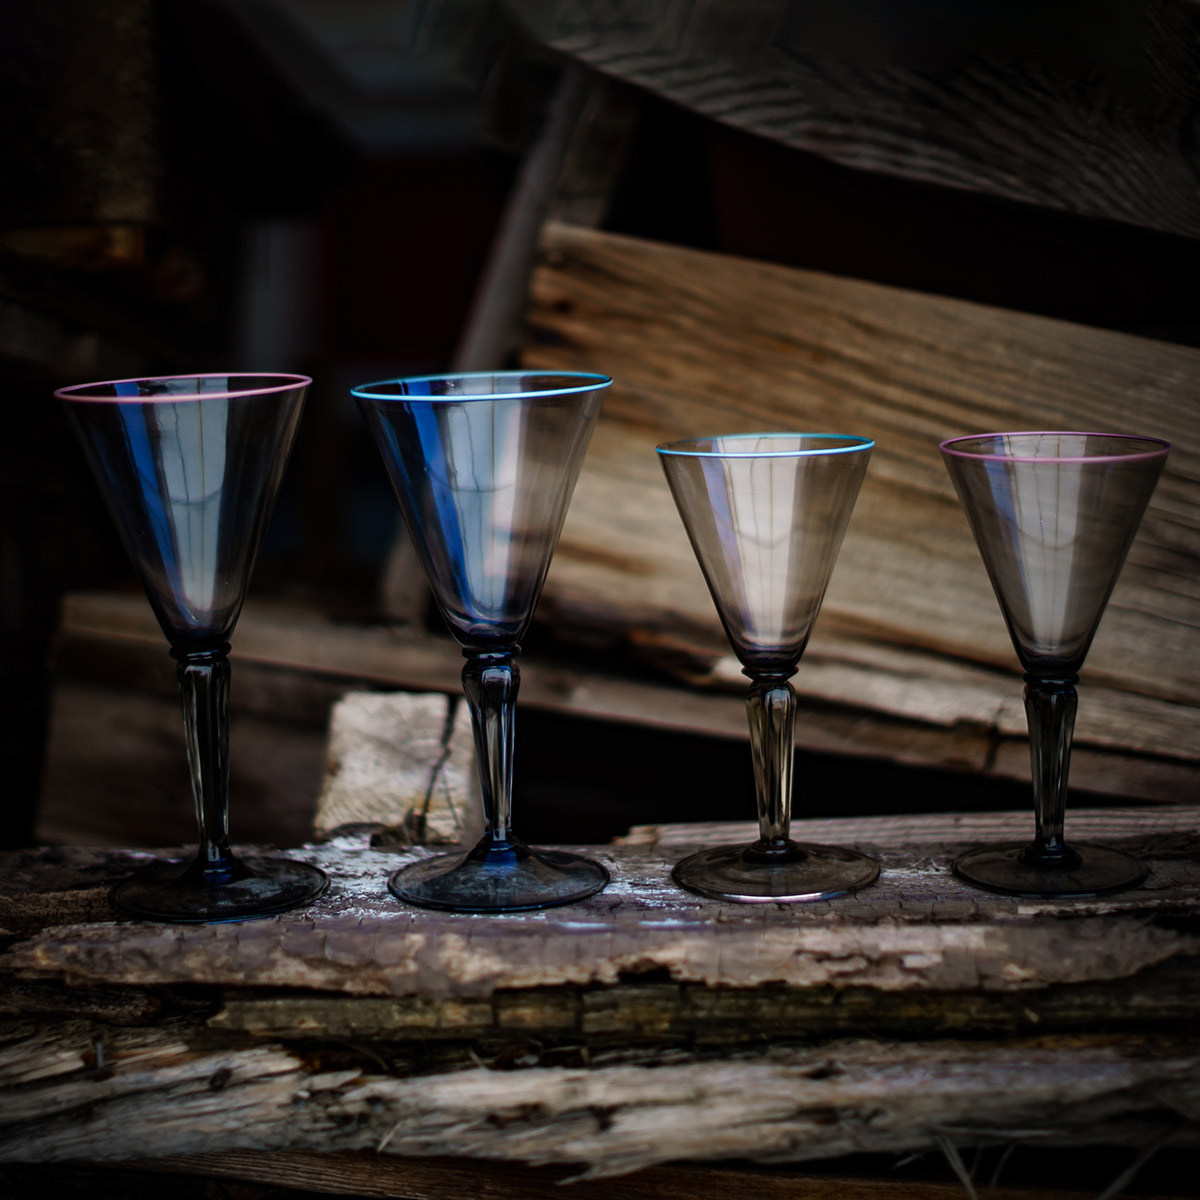 tulipano_glass_design_murano_handmade_venice_giberto_cocktail_water_wine_pink_blue_rim_luxury